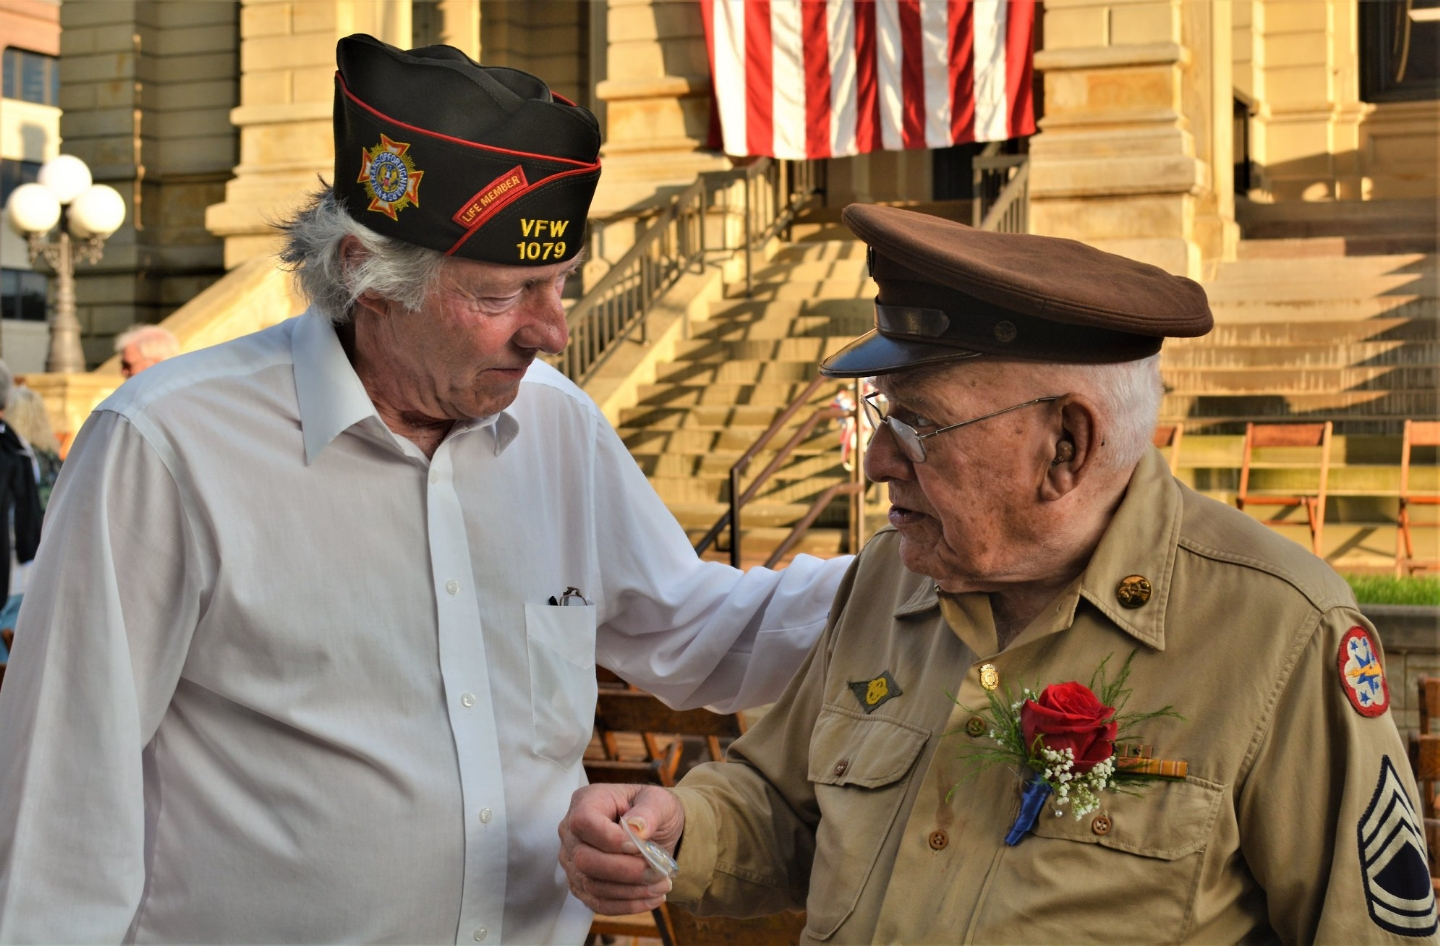 World War 2 Veteran was the guest speaker at the rededication ceremony for the WWII Memorial and he was also the guest speaker when the memorial was first dedicated the first time in 1950. Commander Root and Arthur Goodman